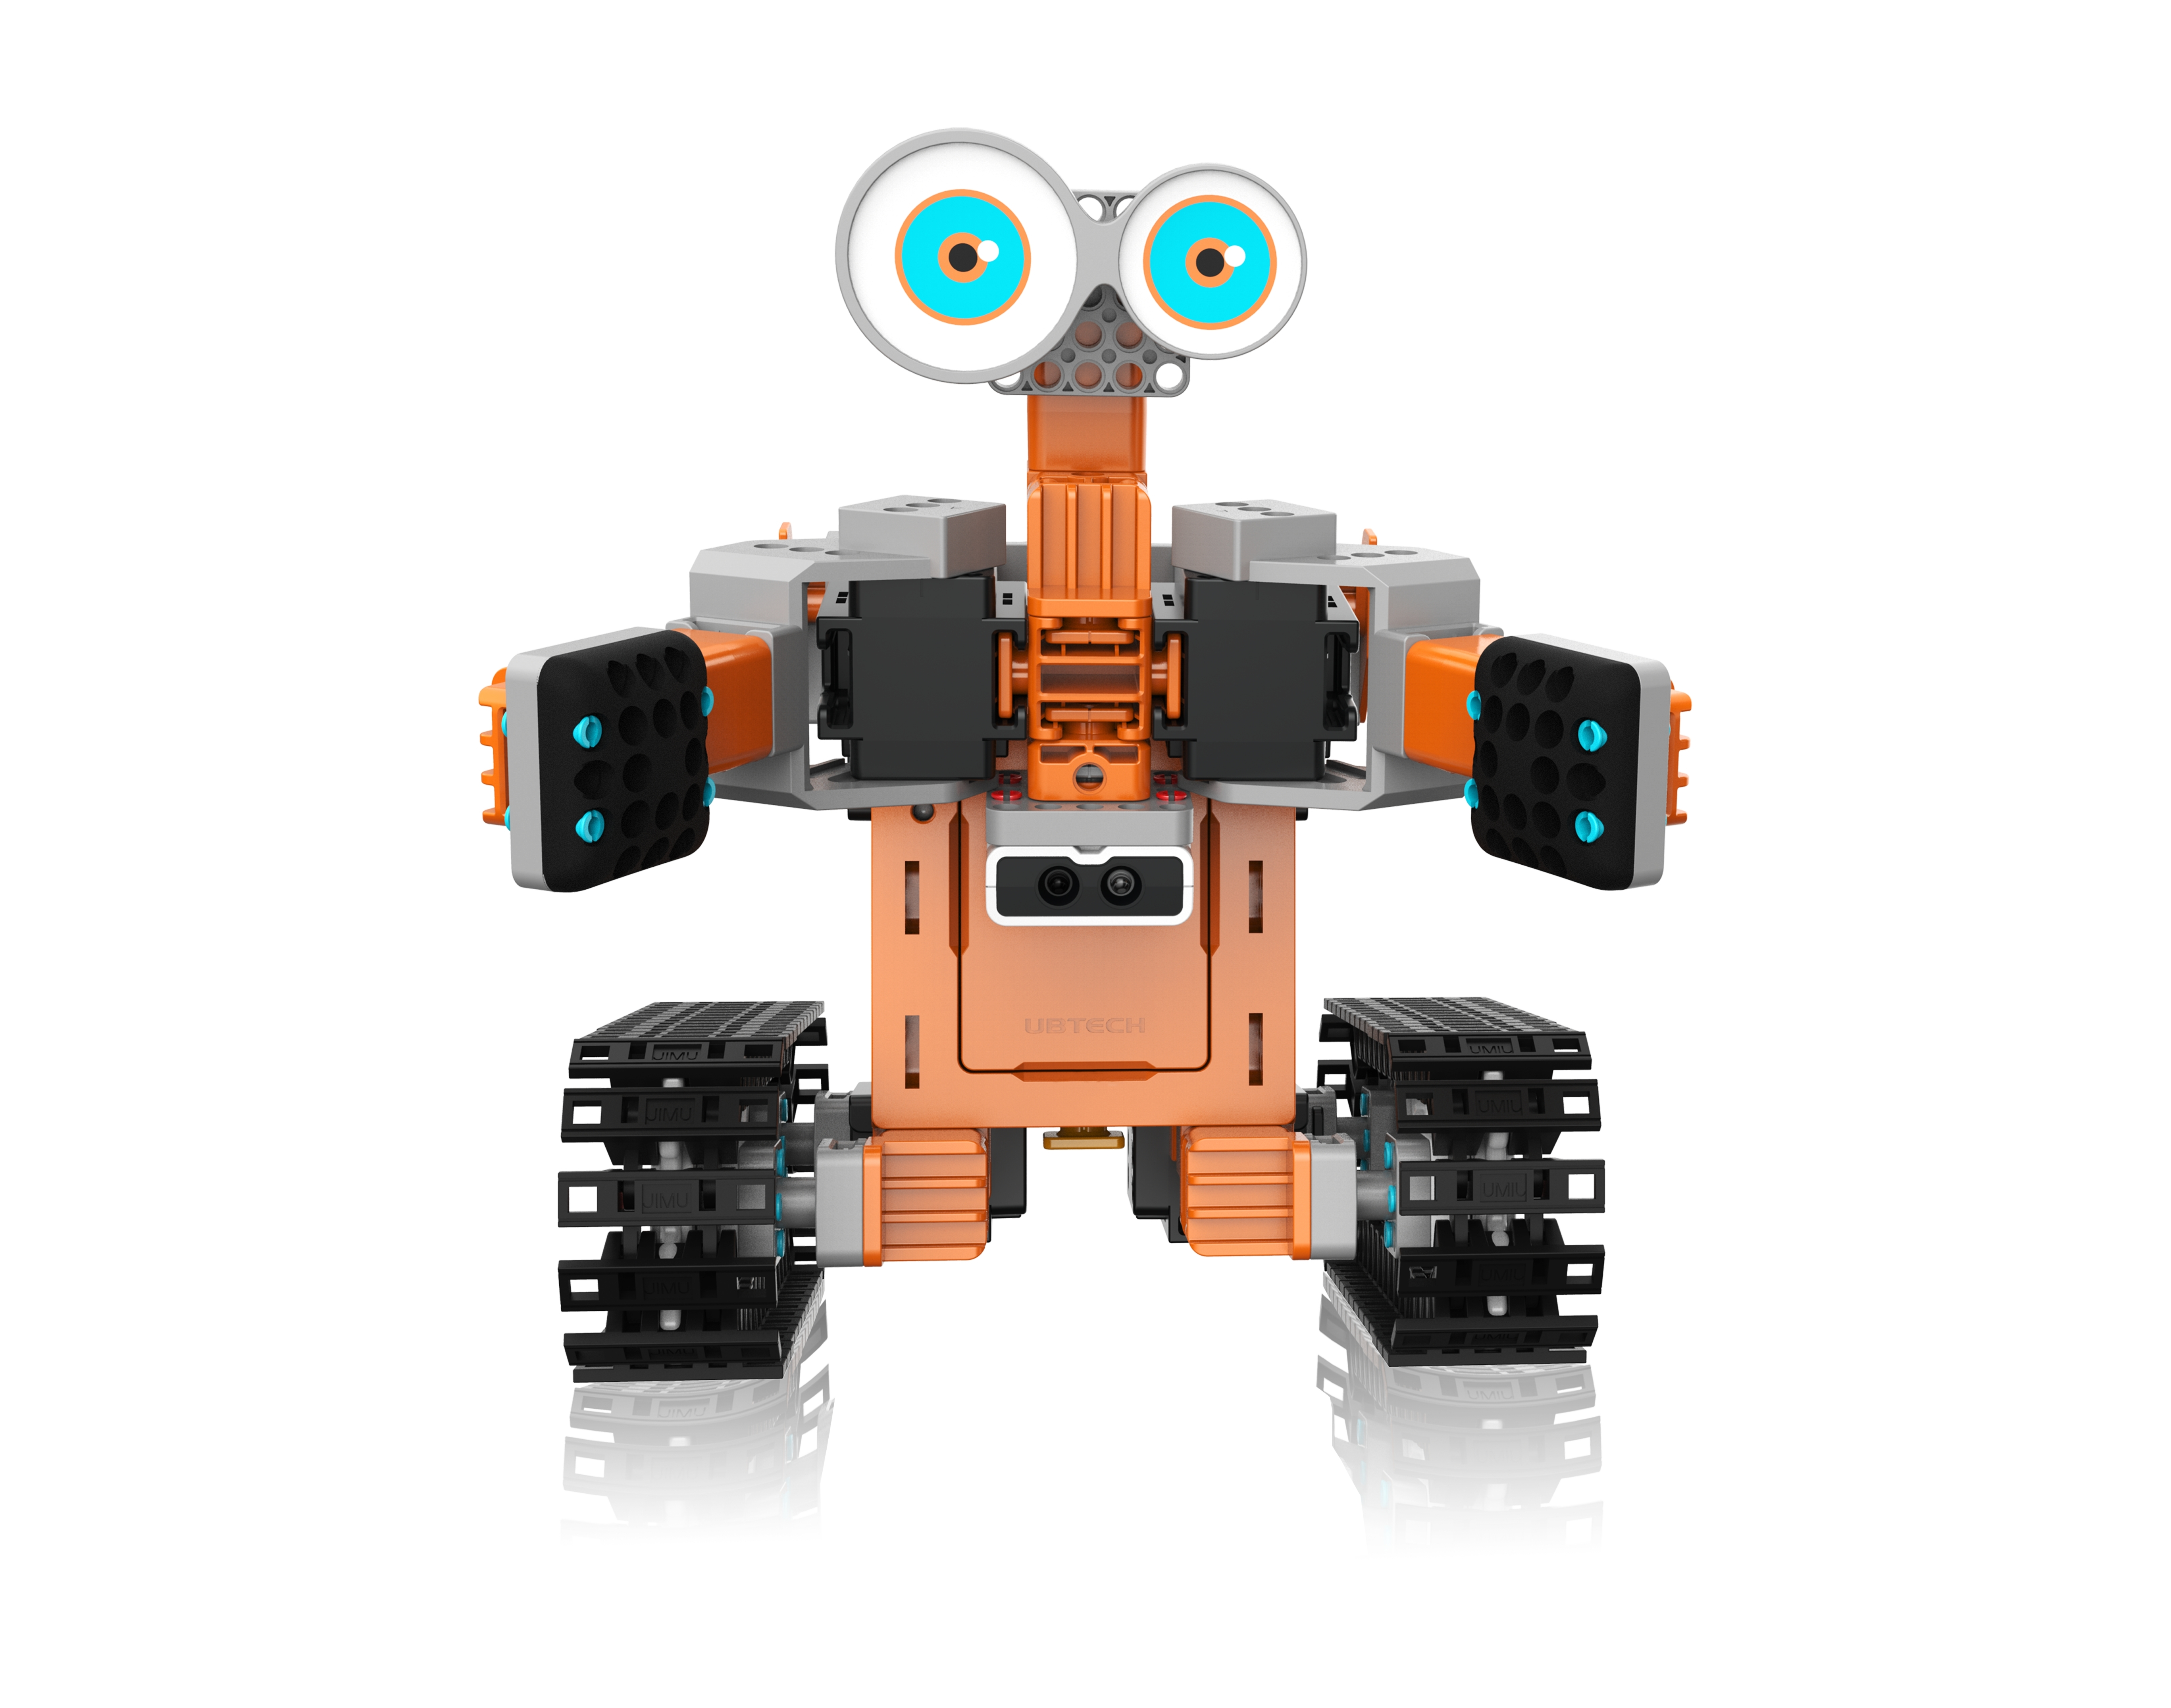 Ubtech Introduces Tankbot The First Jimu Robot That Runs On Treads Alpha 1s Humanoid Is An Exciting New Addition To Family Kids Are Going Love Said John Rhee General Manager North America